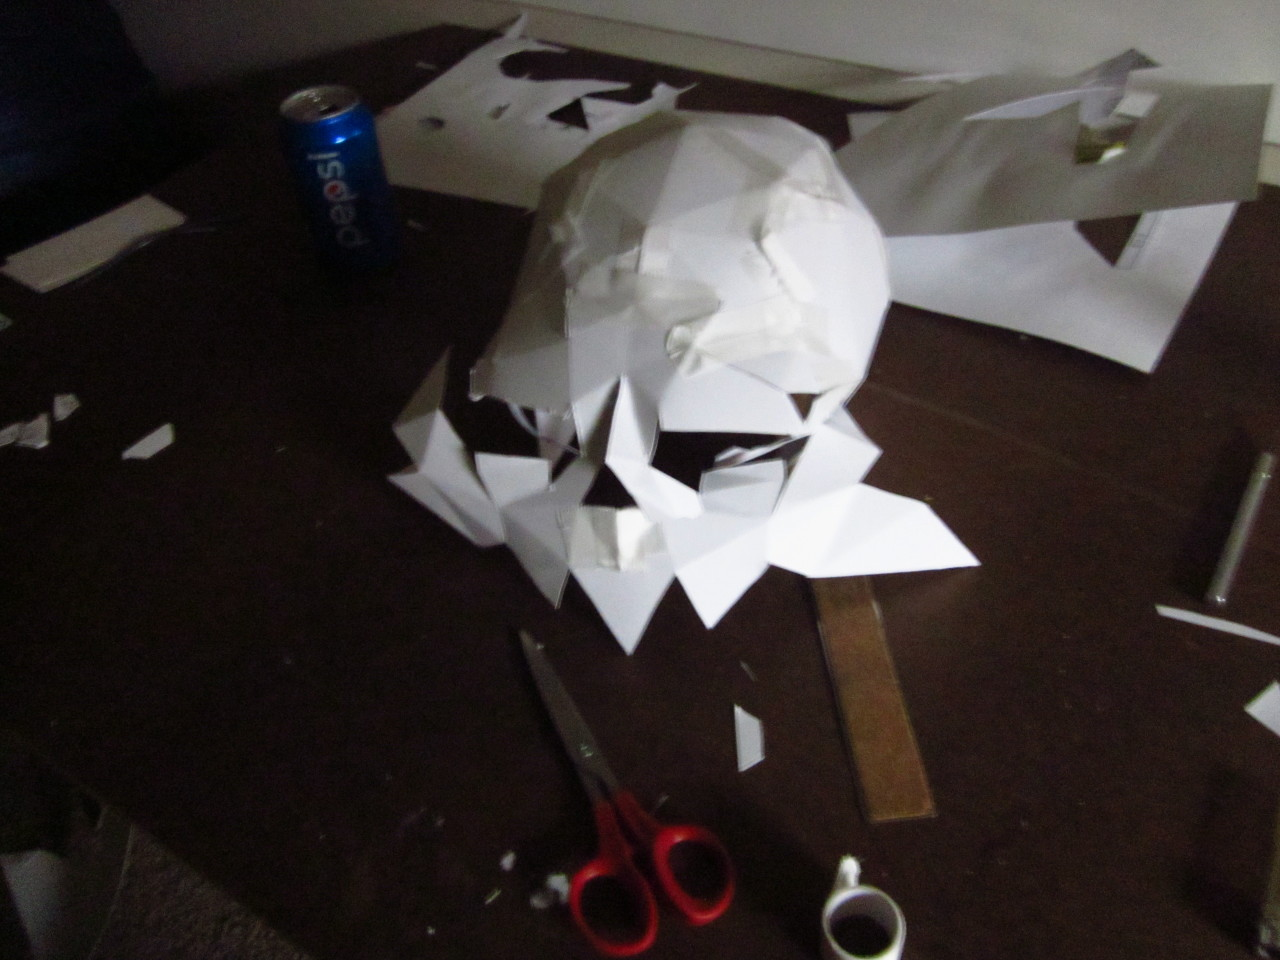 A papercraft skull sits on a brown desk, surrounded by rulers, scissors, knives, and tape. It is lit dramatically from one edge, and the face is shaped but not yet finally attached to the crown of the skull.